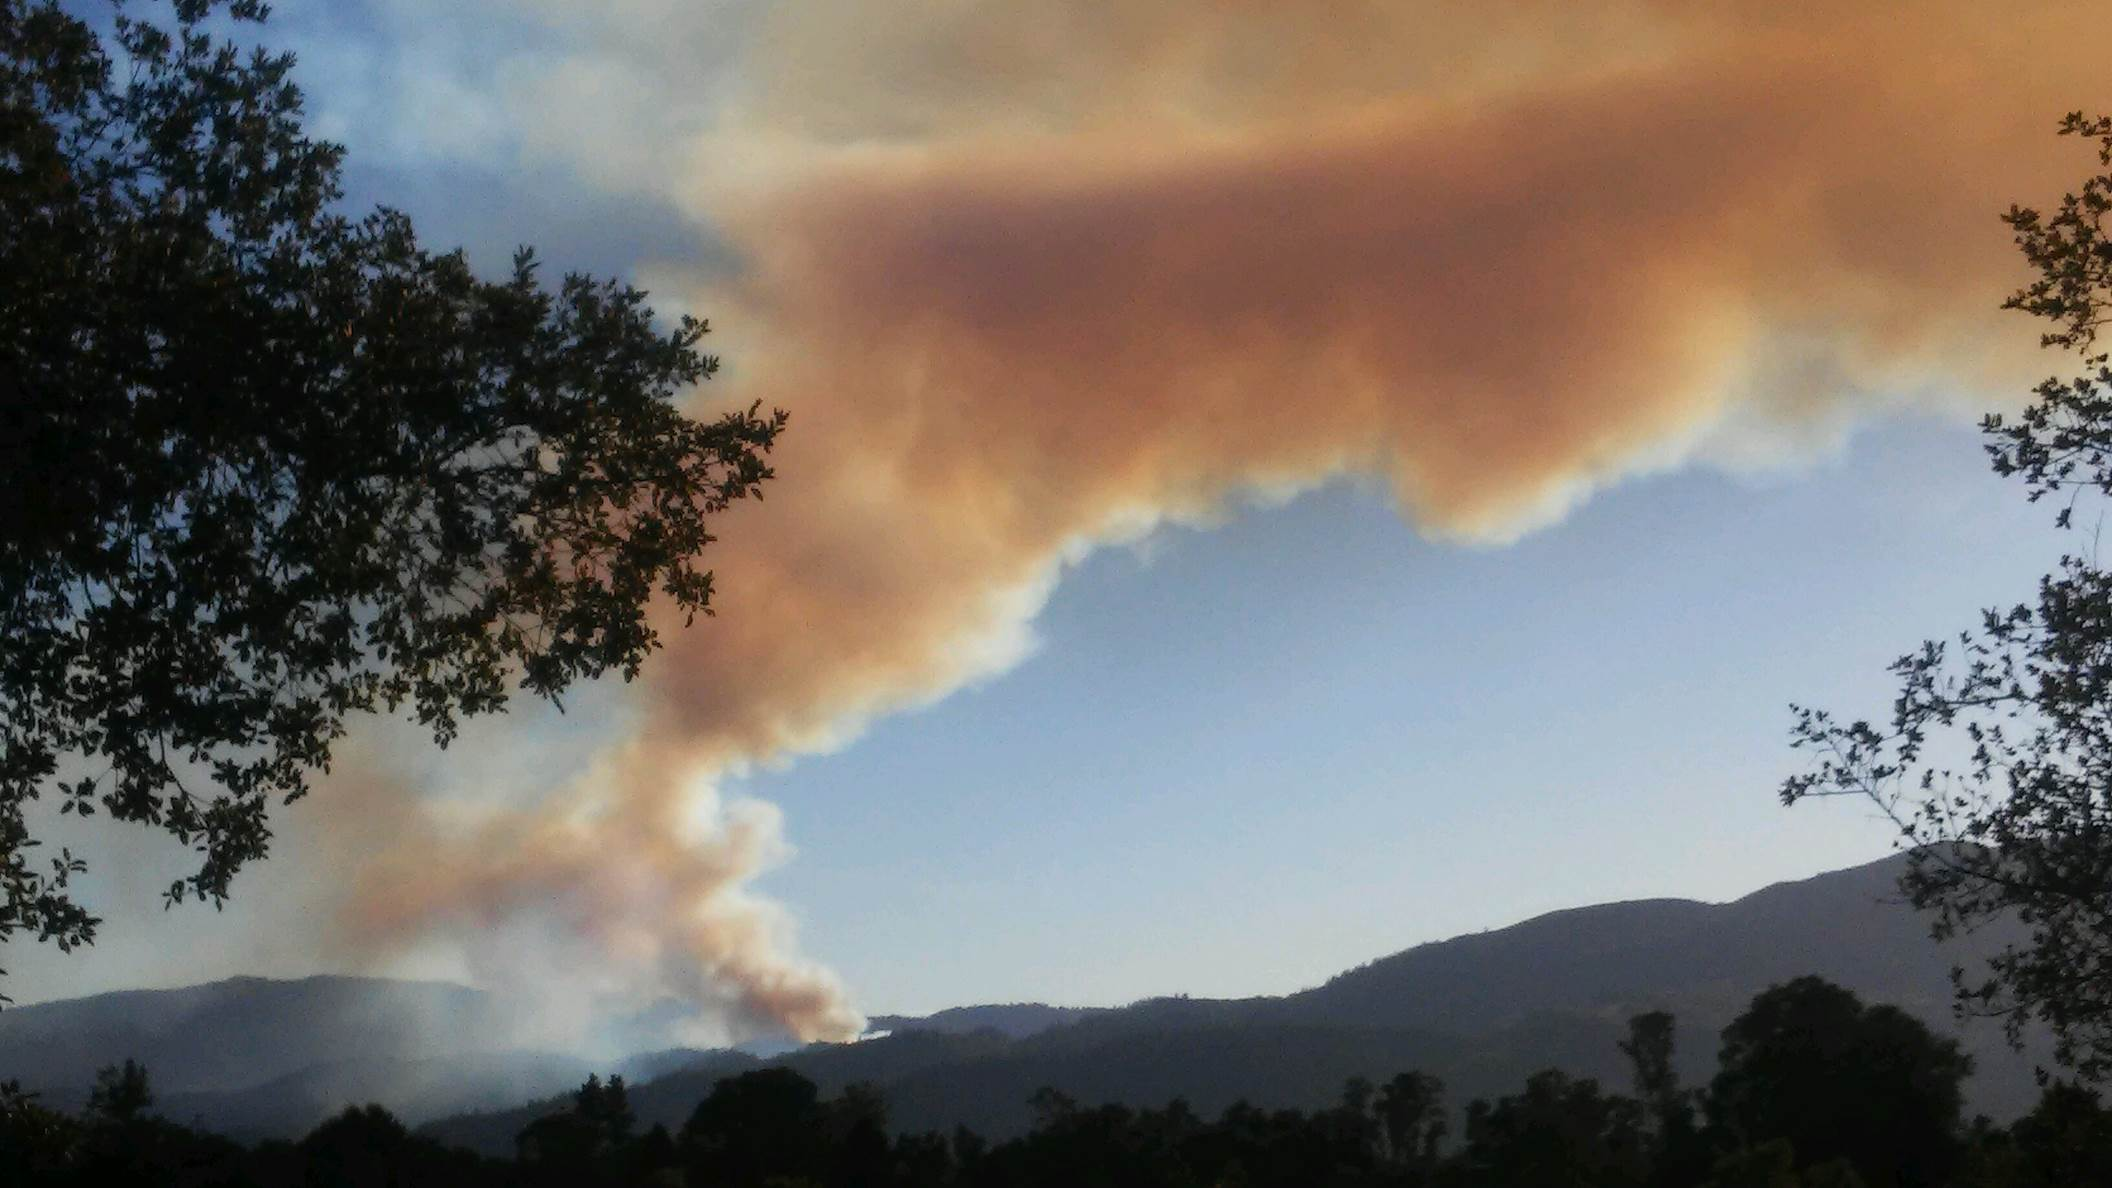 A brush fire has been reported in the Dry Creek area of Napa. The fire appears to be burning 30 acres and growing.